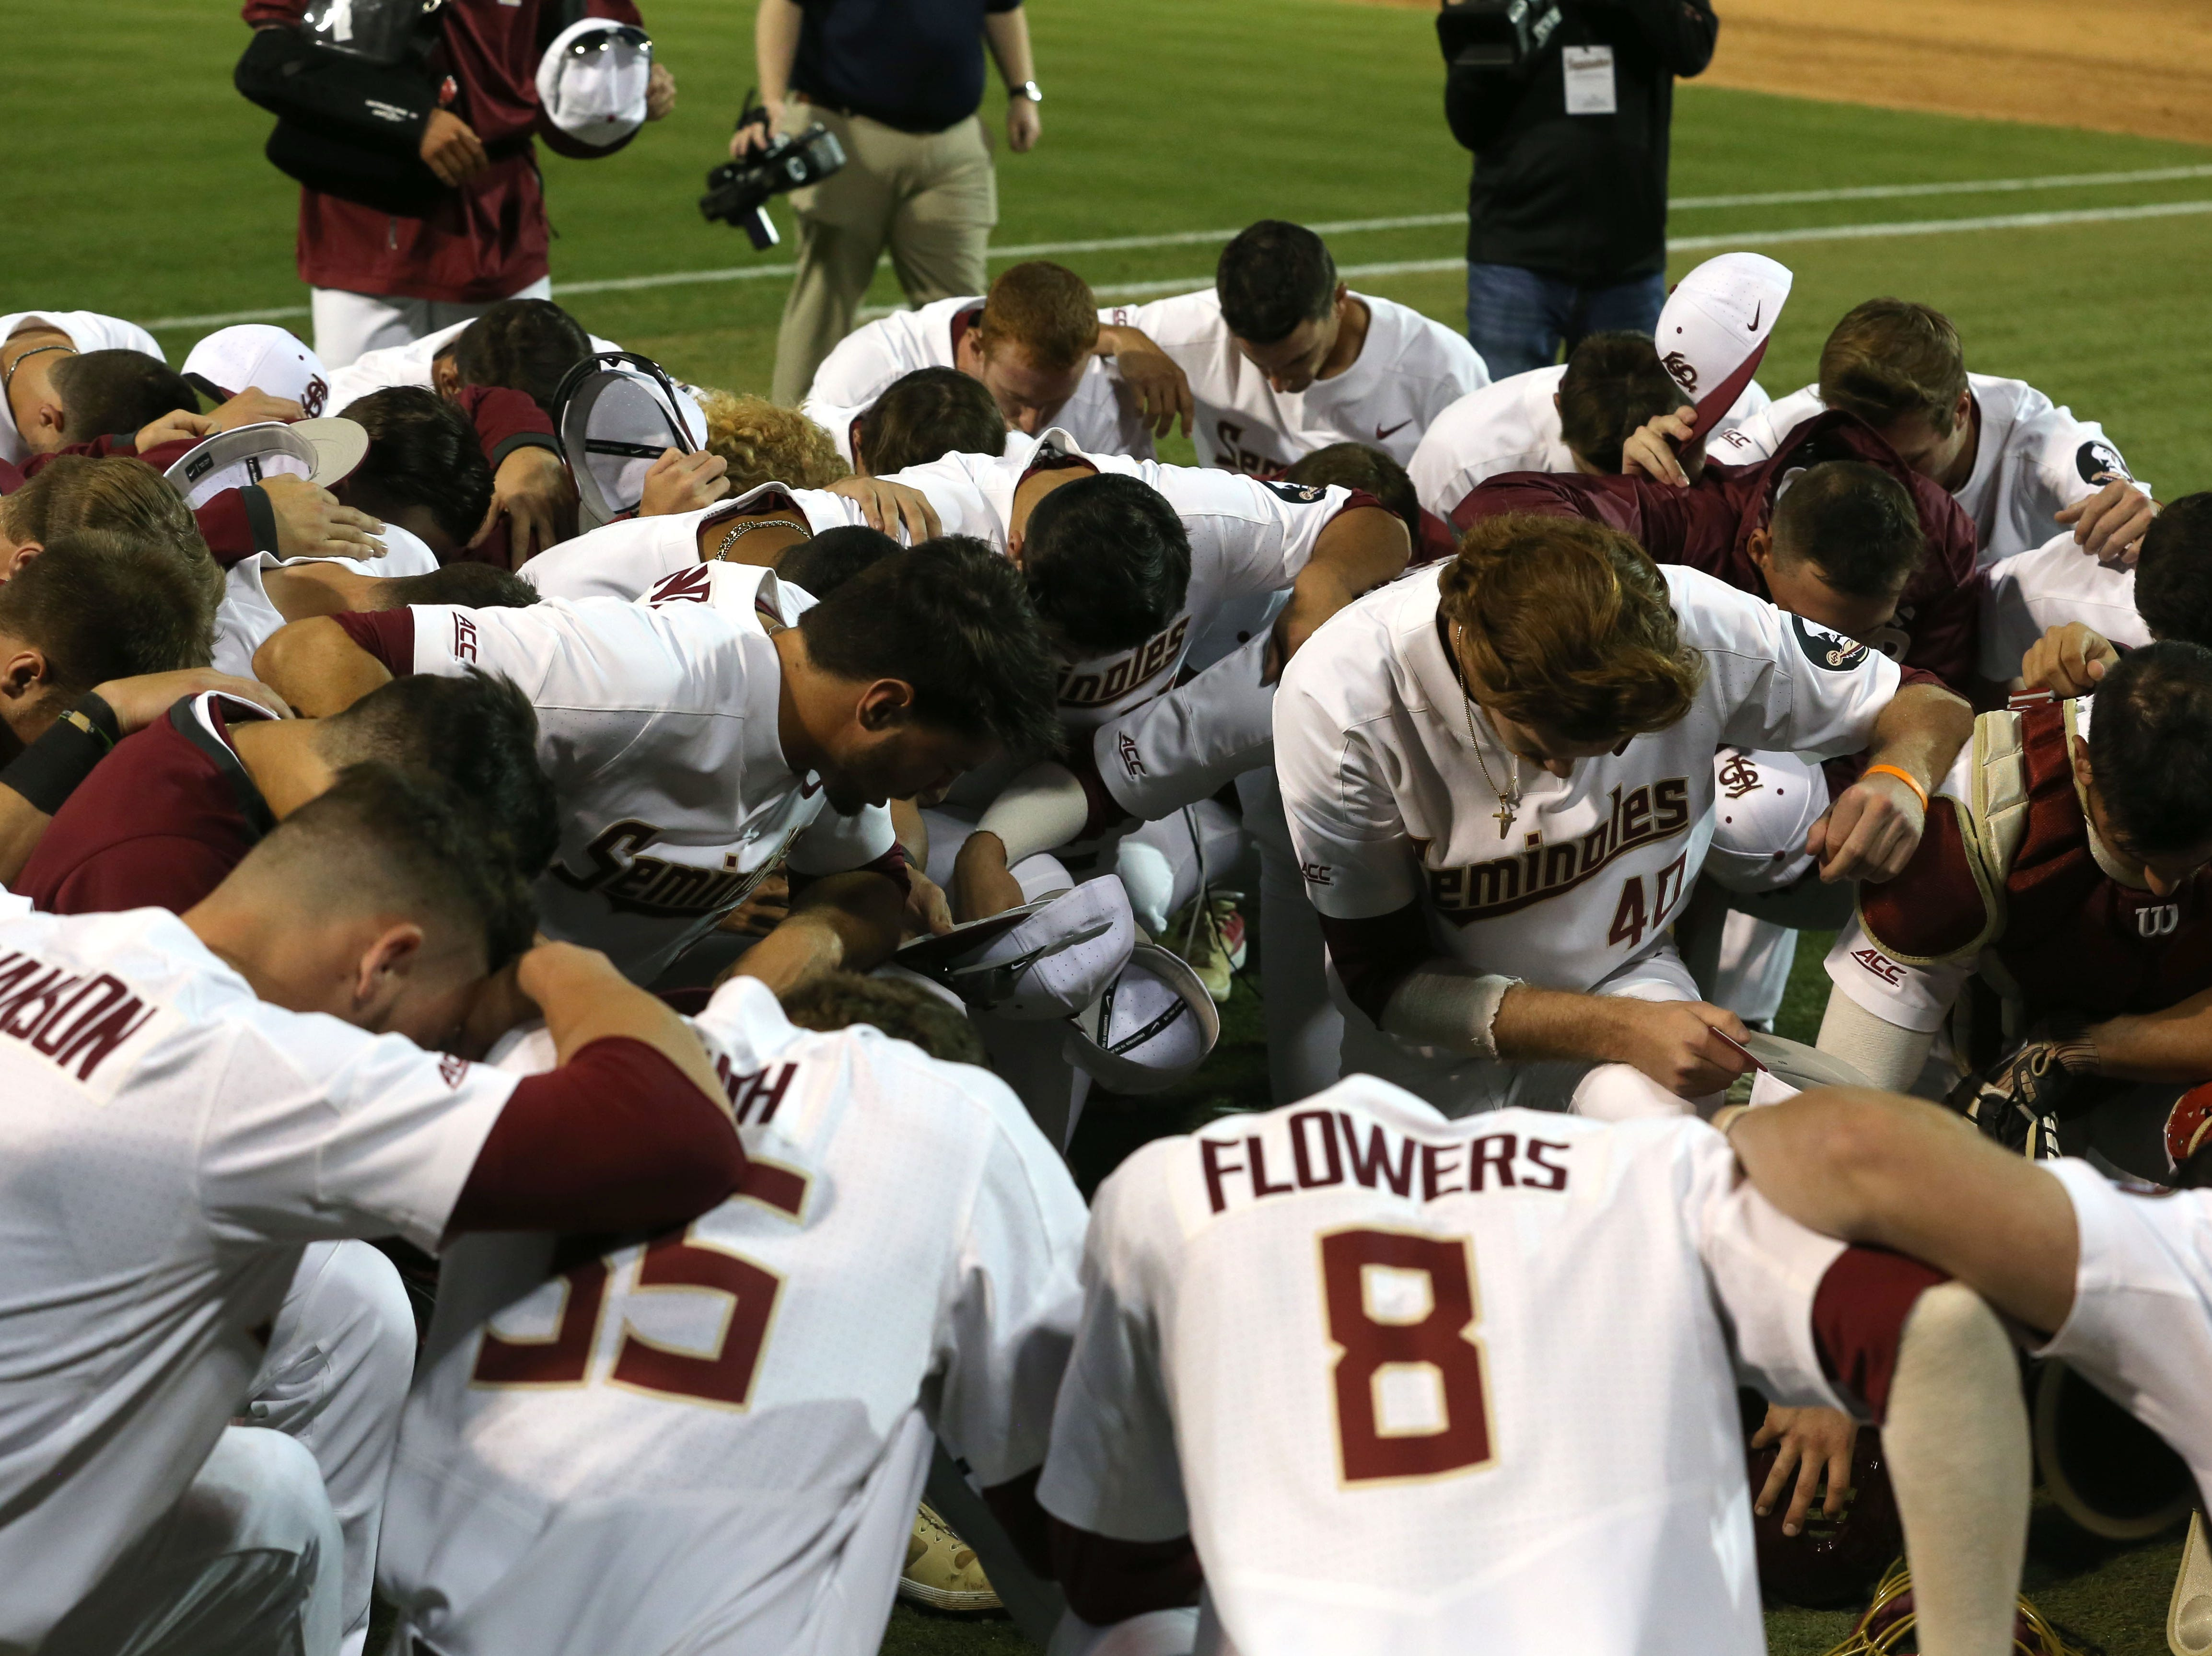 The Florida State Seminoles take a knee together after shutting out the Maine Black Bears in the 2019 season opener game, Friday Feb. 15, 2019.